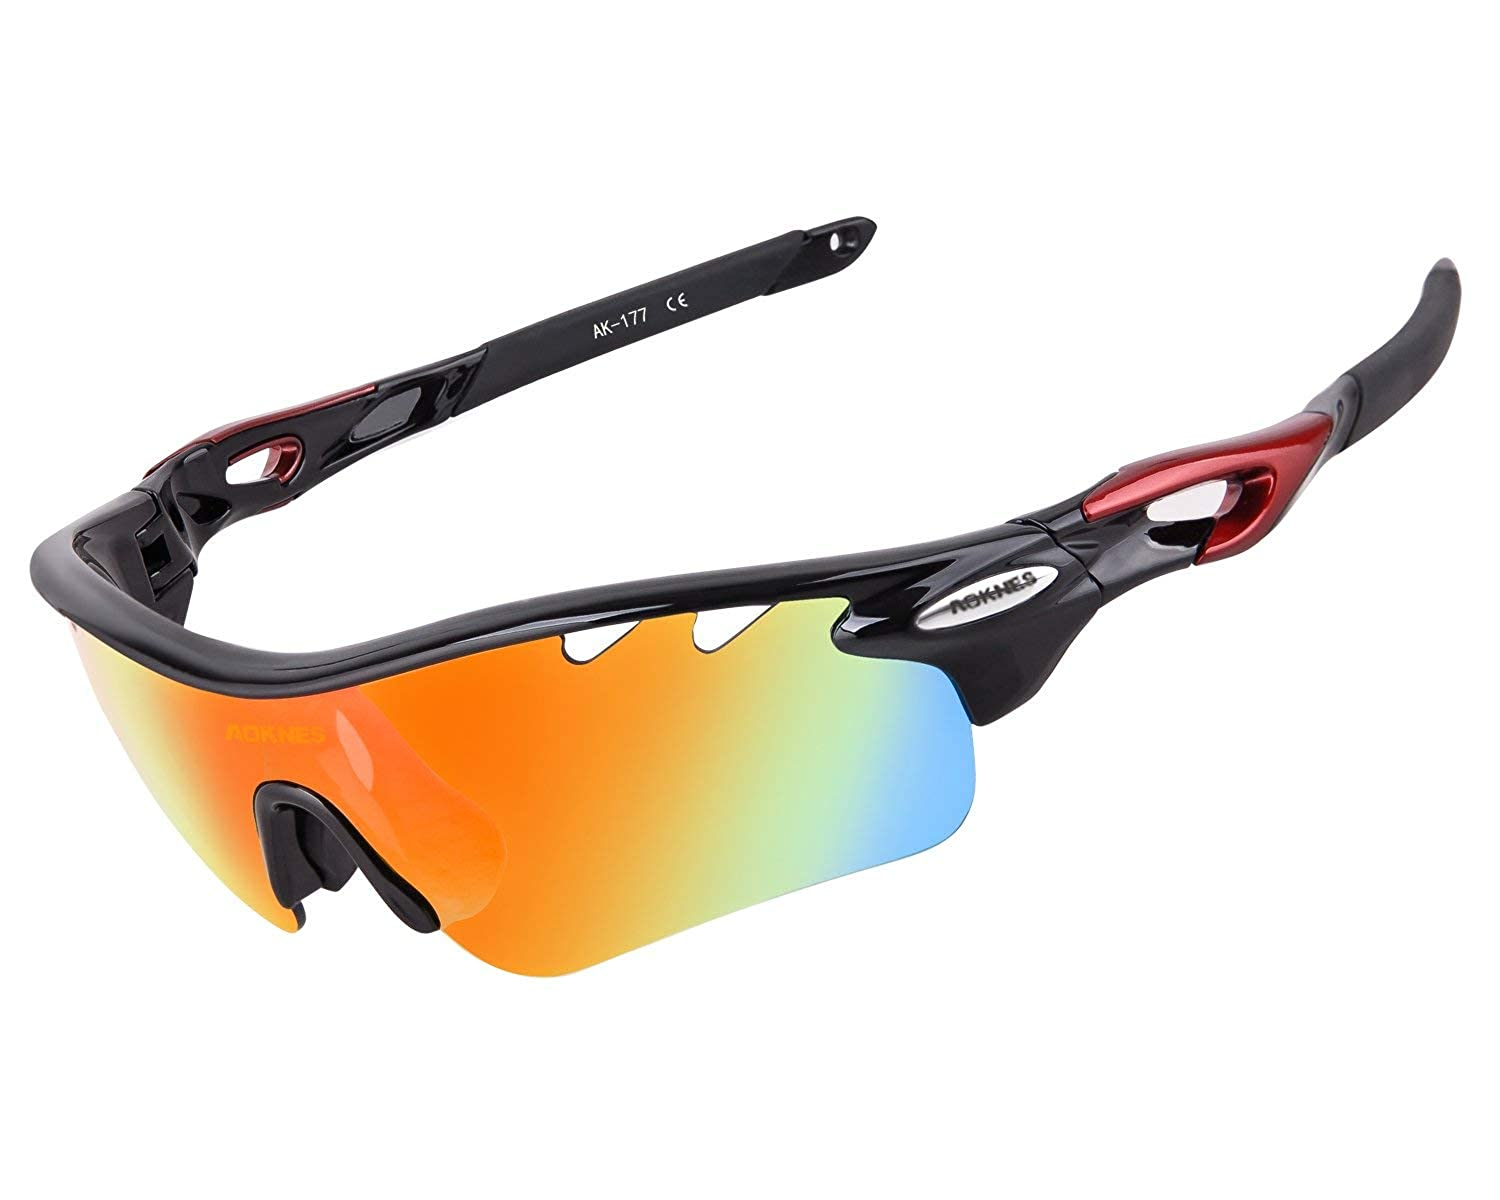 A37 Polarized Sports Sunglasses Glare UV400 Protection HD Night Vision for Motorcycle Riding Glasses